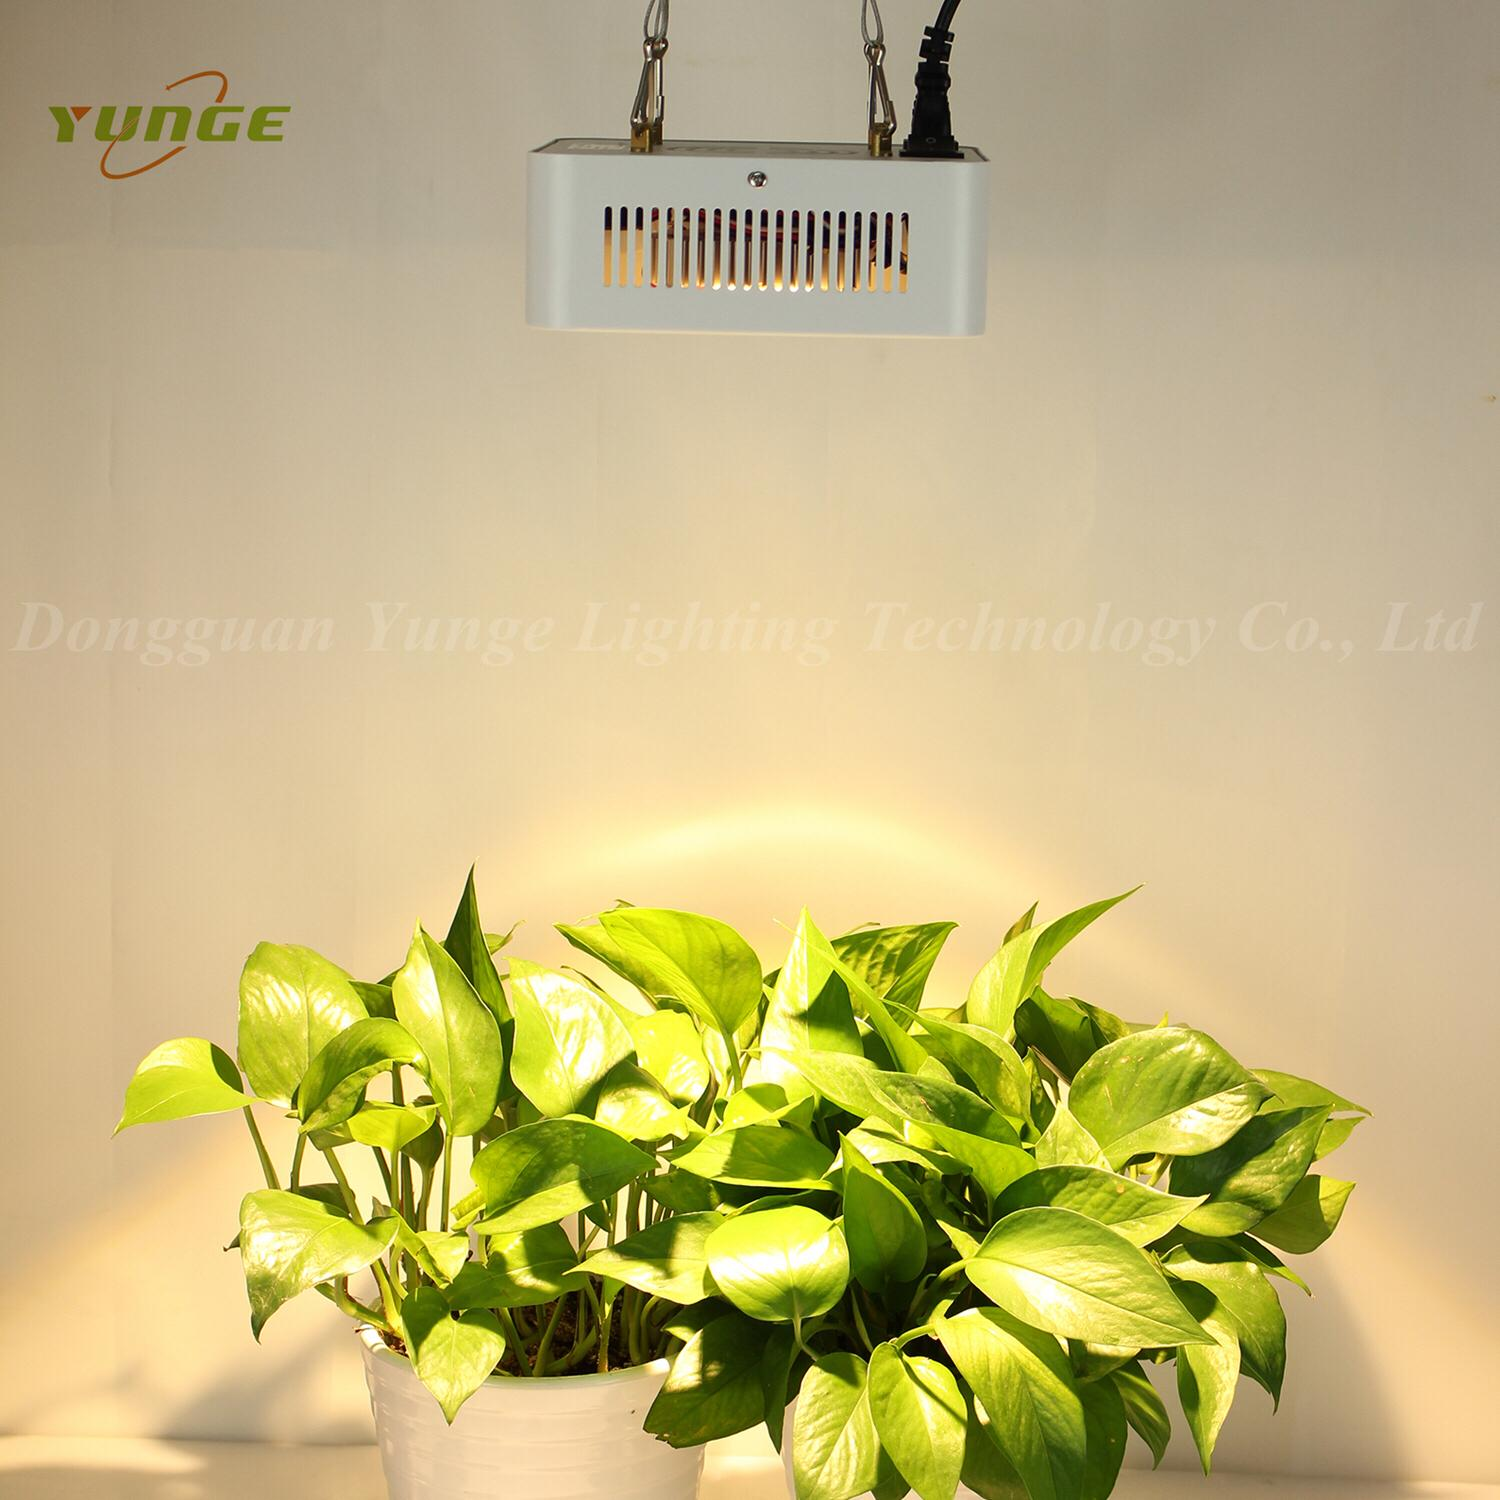 200W COB LED plant grow light,High quality CREE chip,high Lumious flux lamp 7